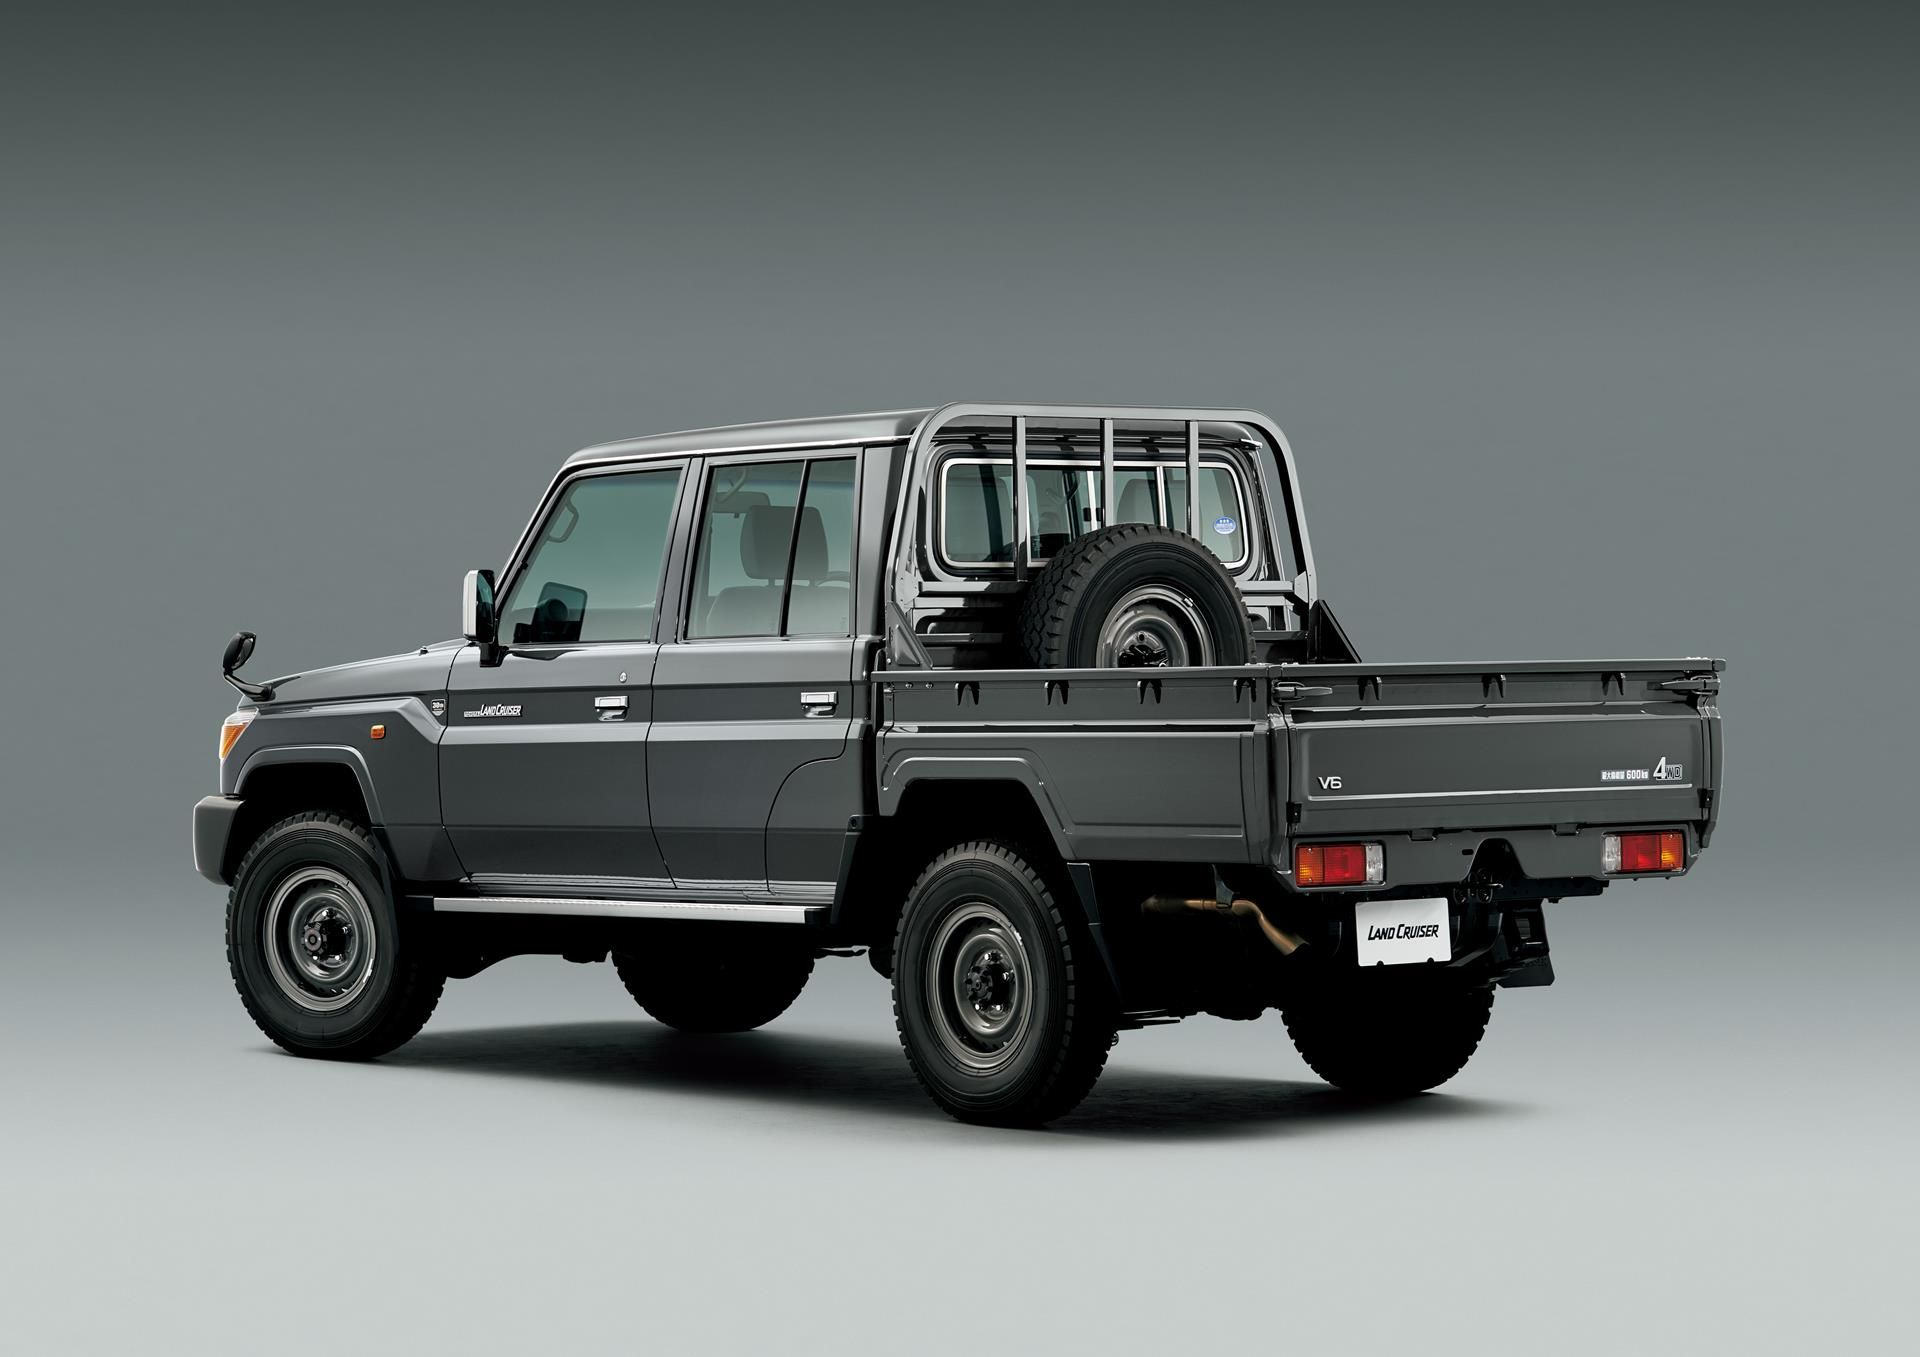 30 Years Of Toyota Land Cruiser 70 - Celebrating With